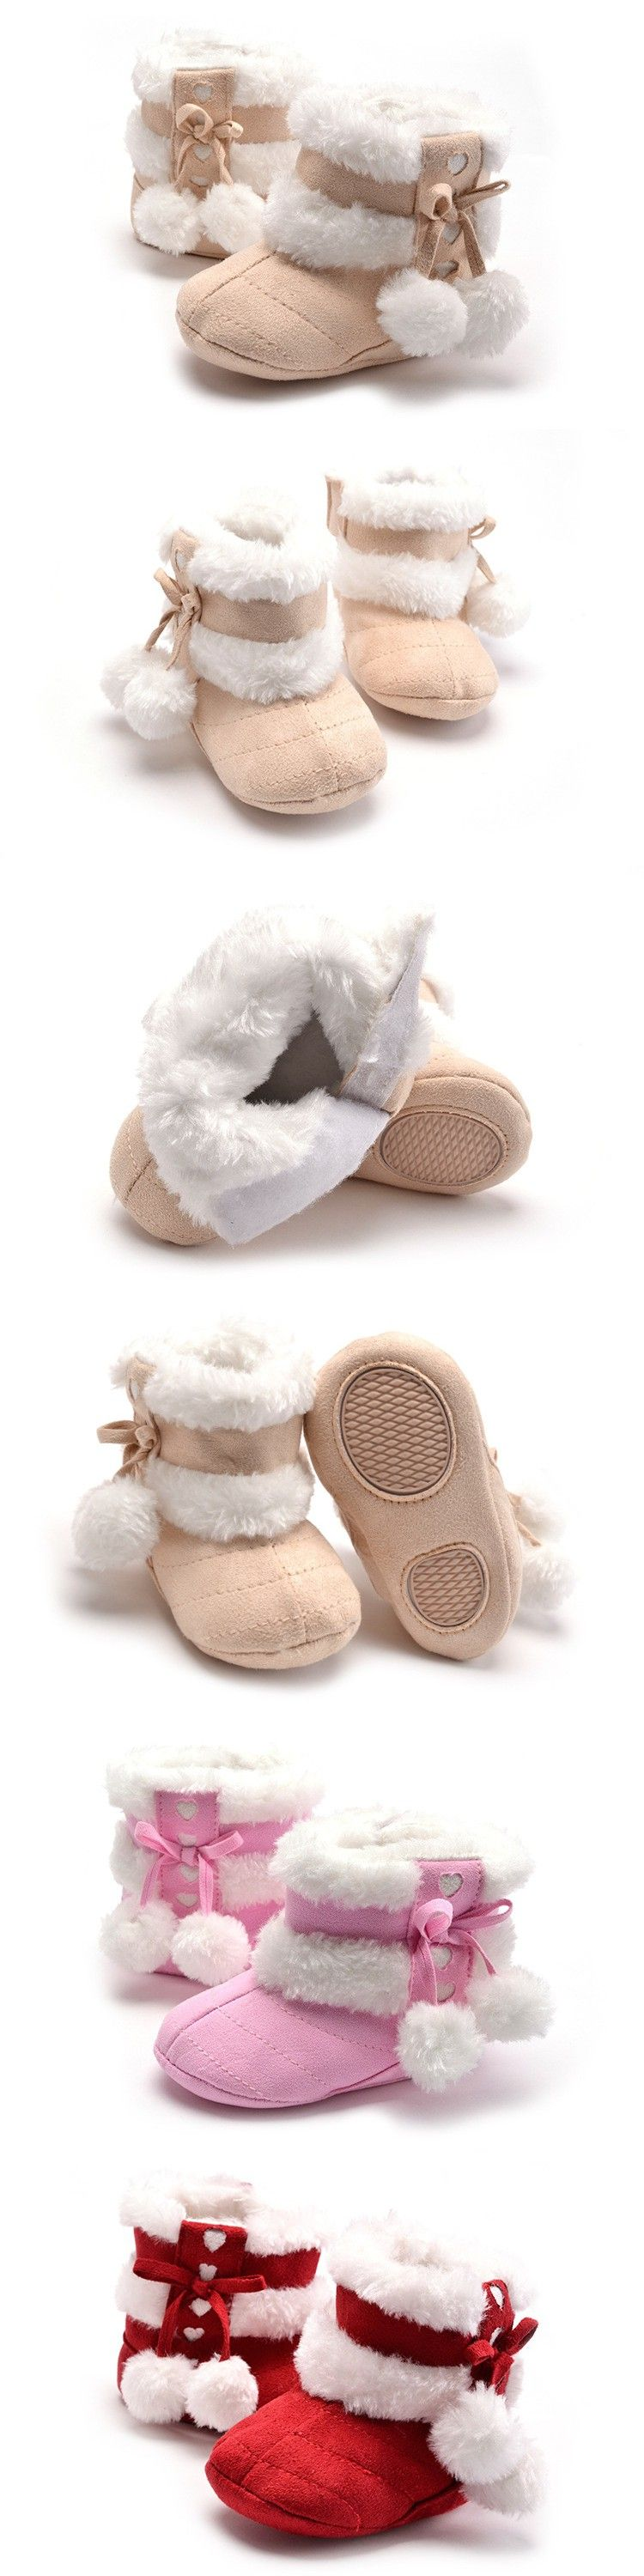 2016 New Winter Baby Girl Shoes Infant Thicken Boots First Walkers